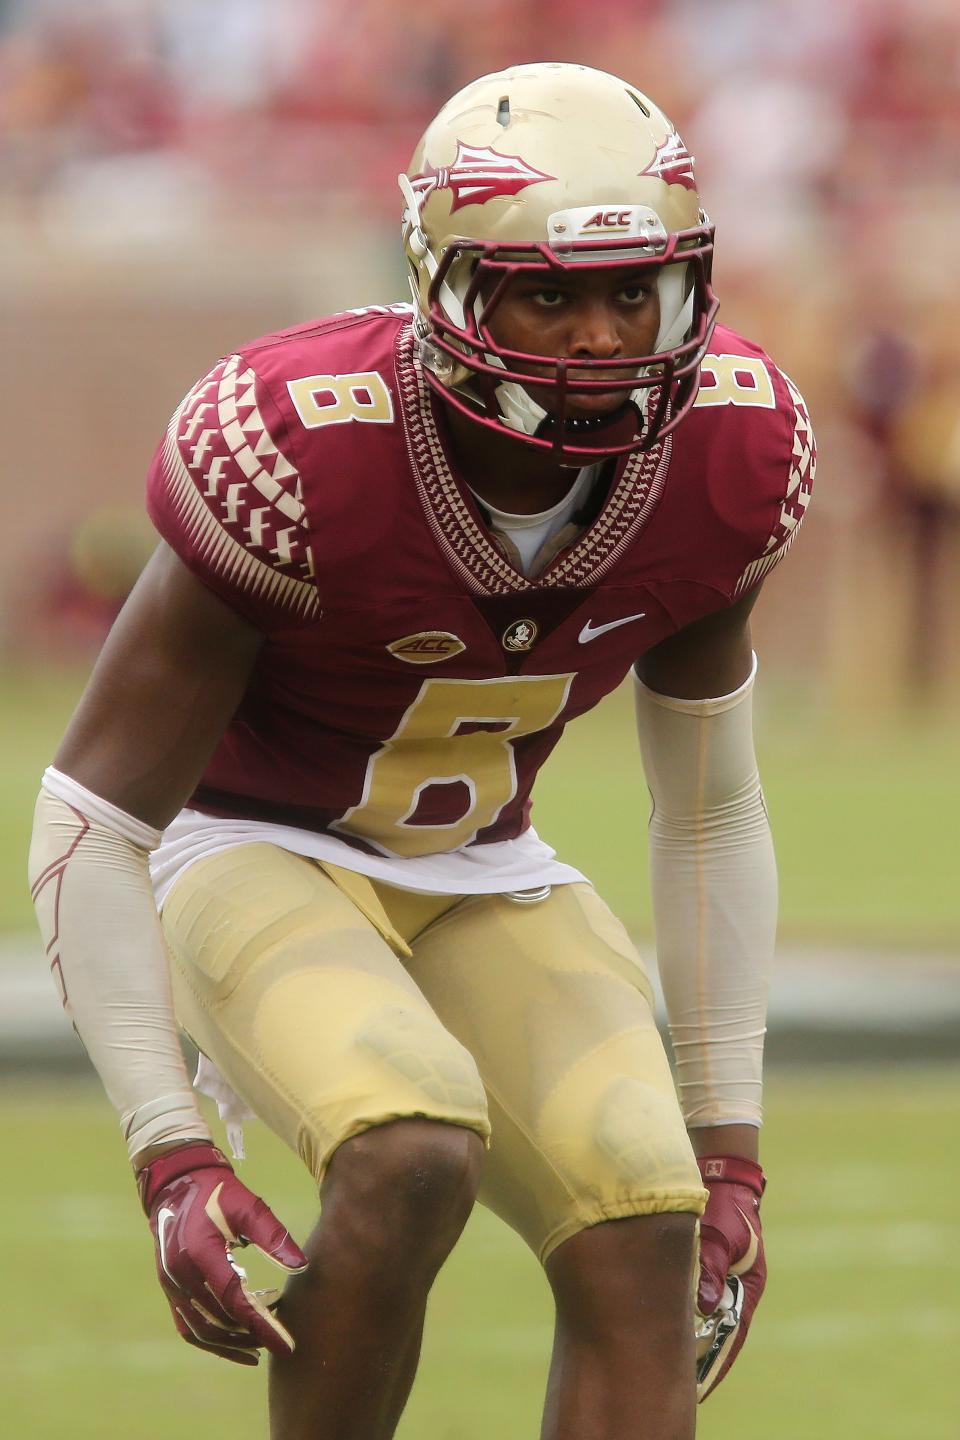 Jalen Ramsey may be the best corner or safety in the draft this year.